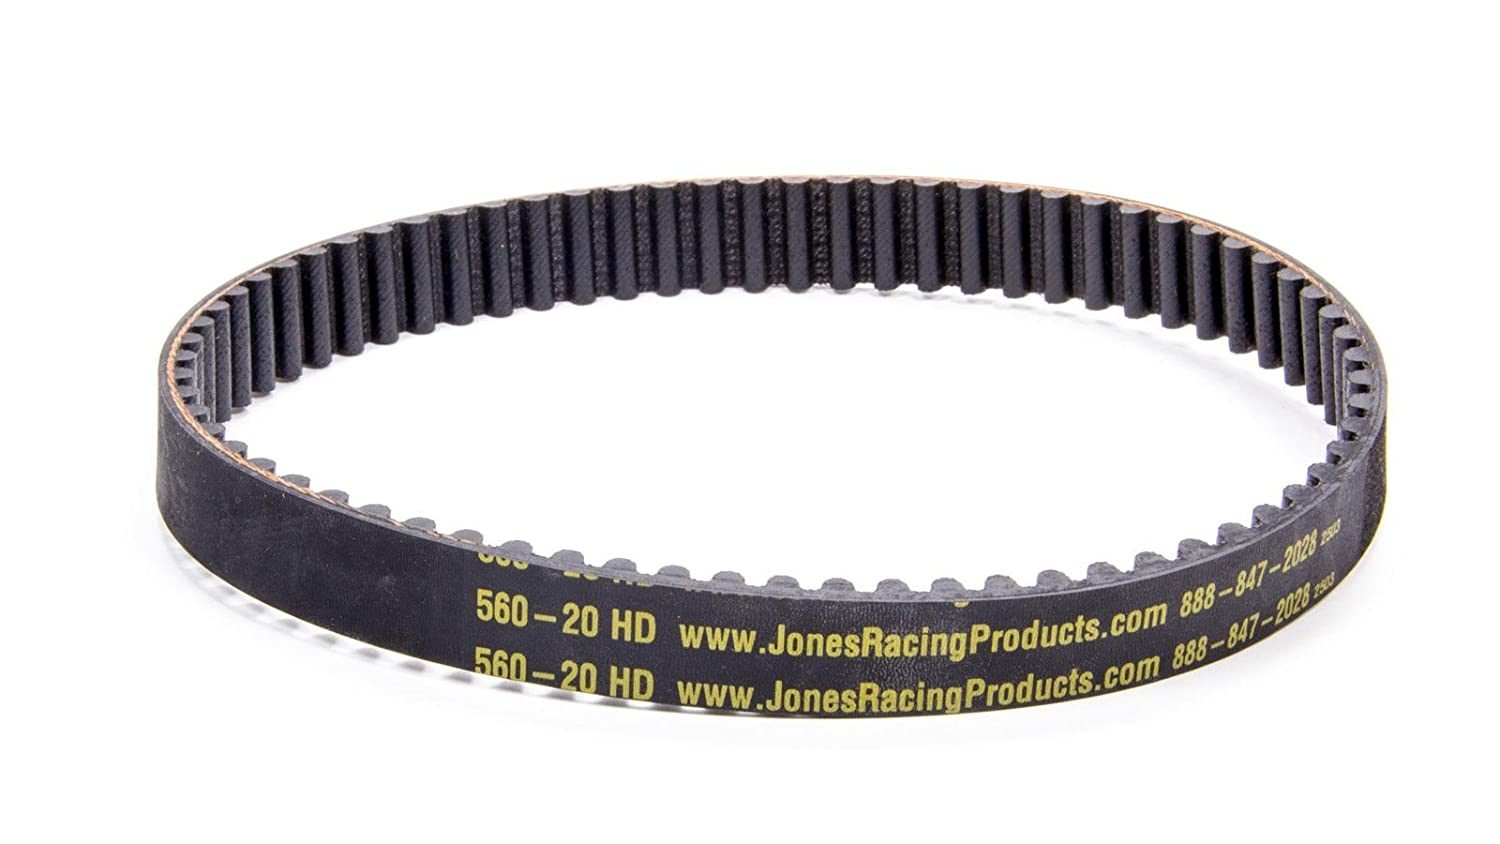 Jones Racing Products 600-20HD HTD Belt 600-20 HD